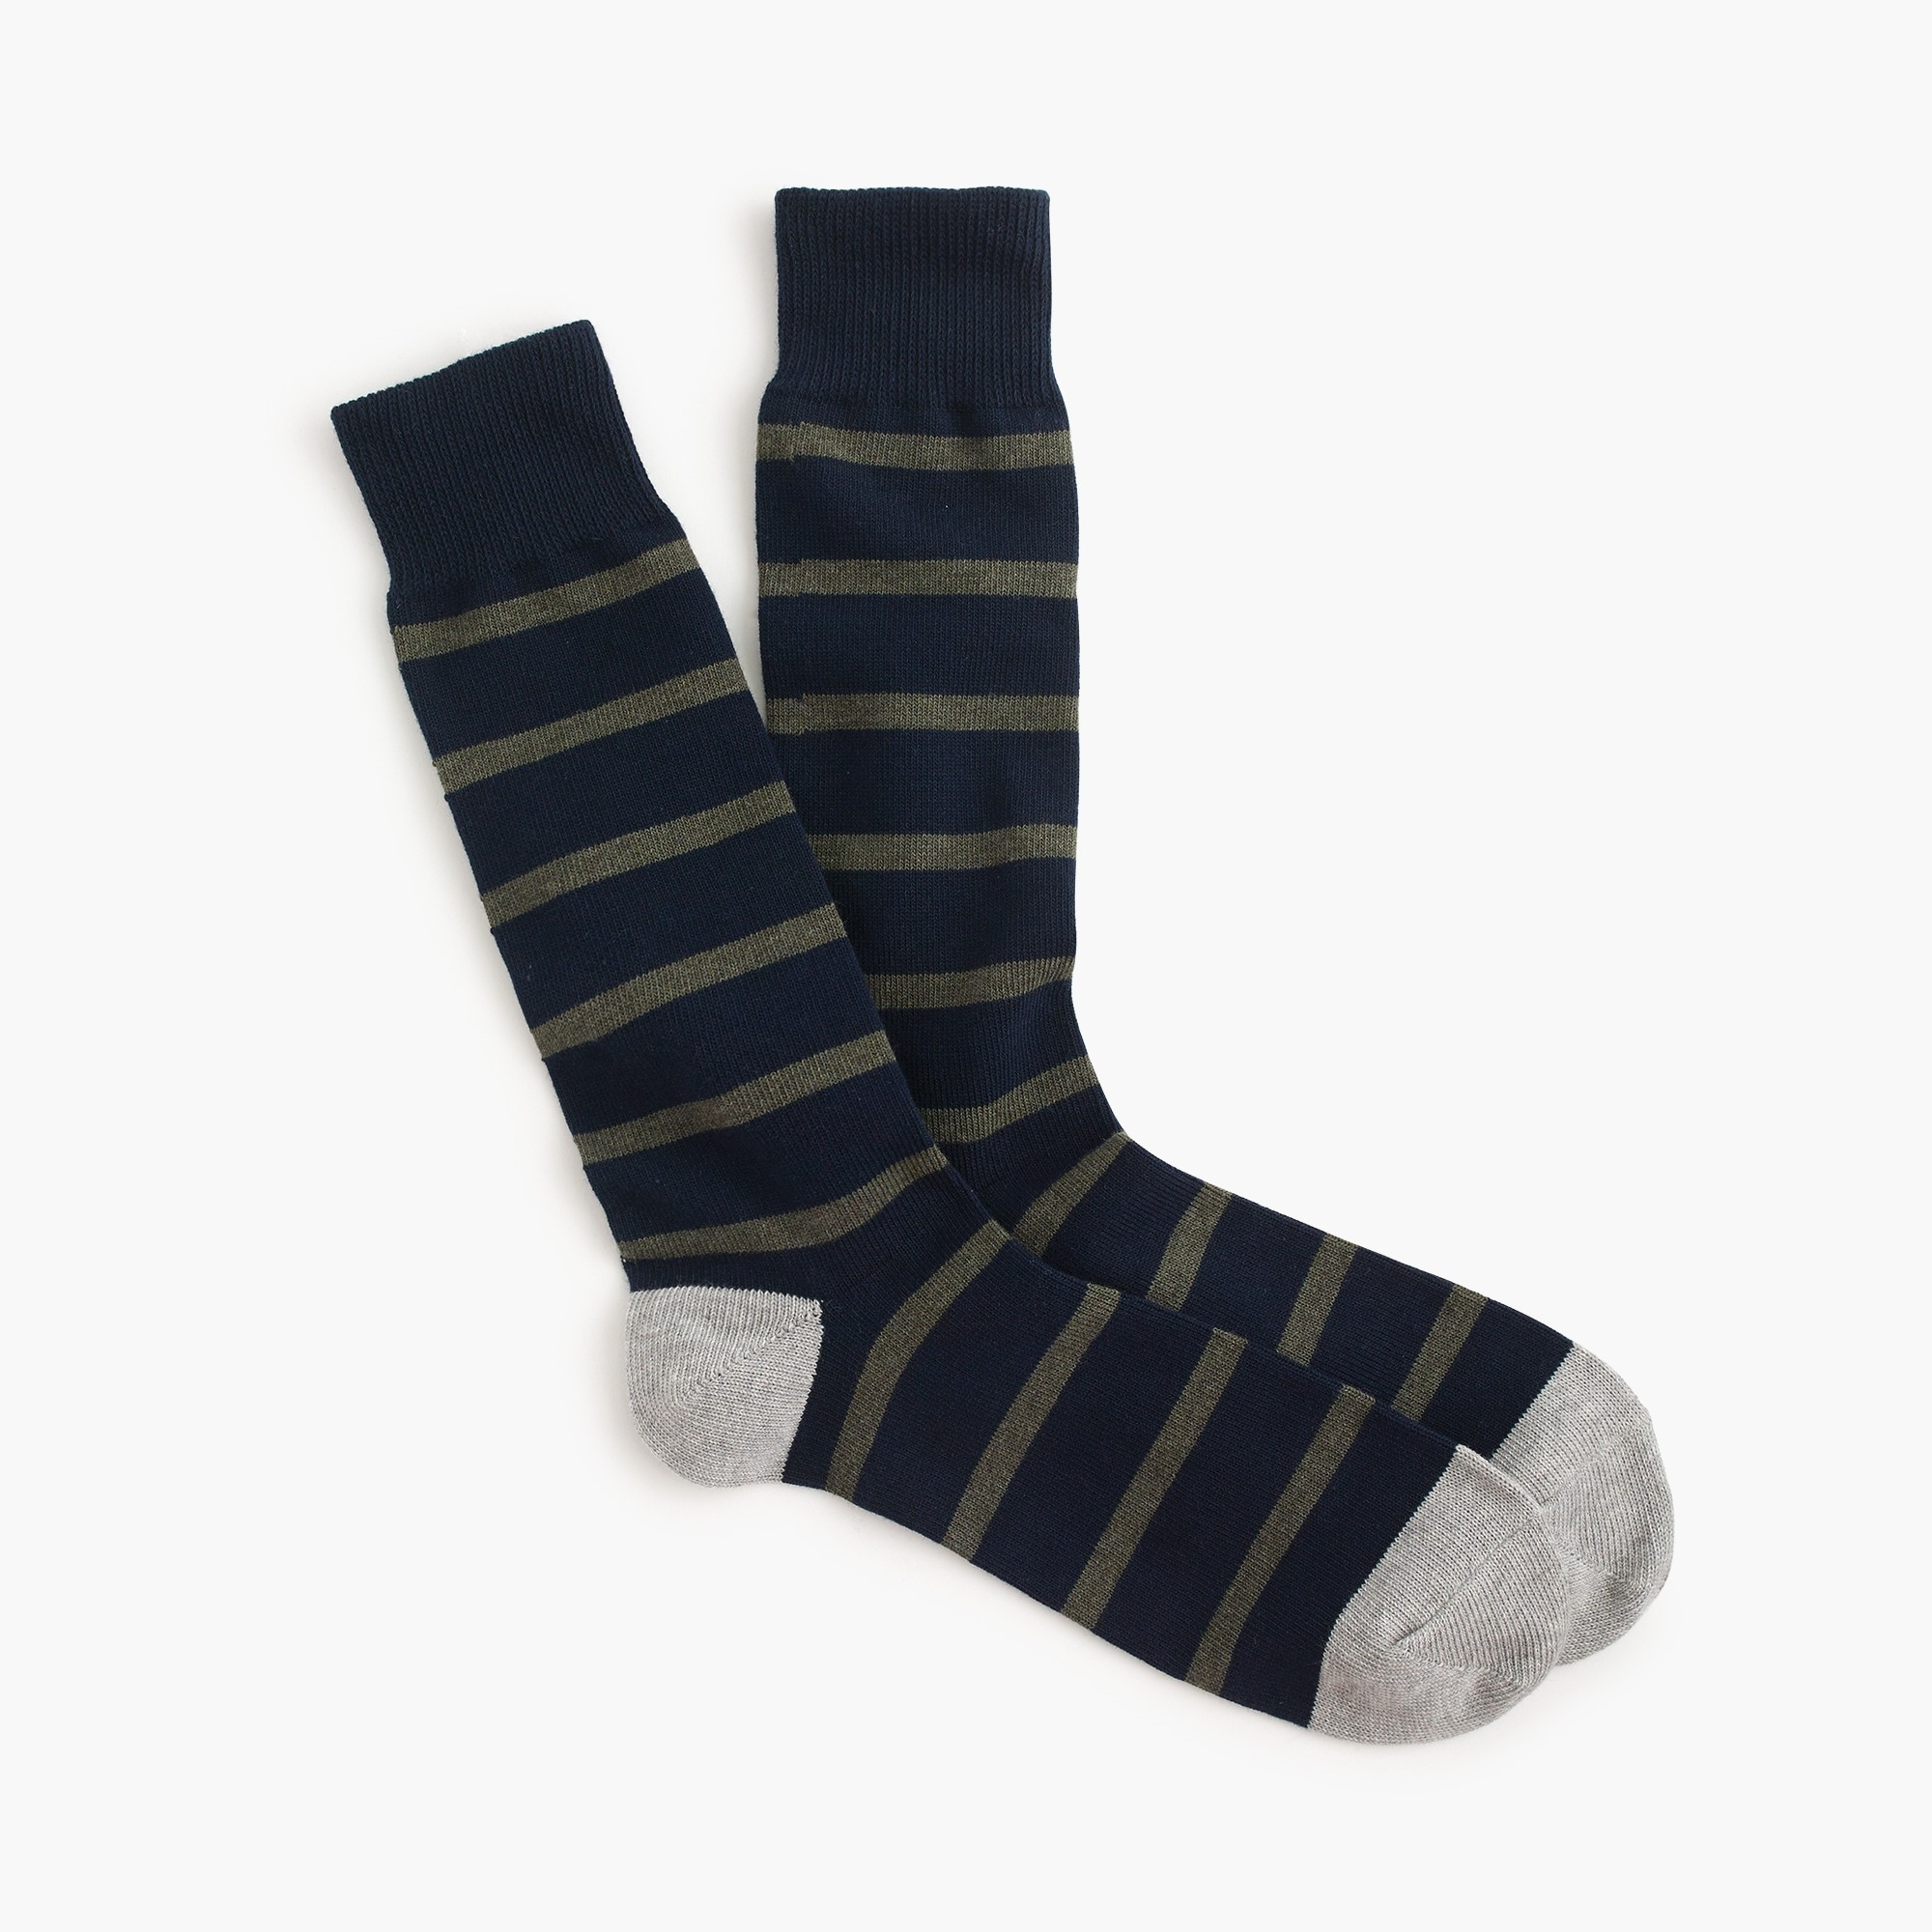 naval-striped socks : men's socks